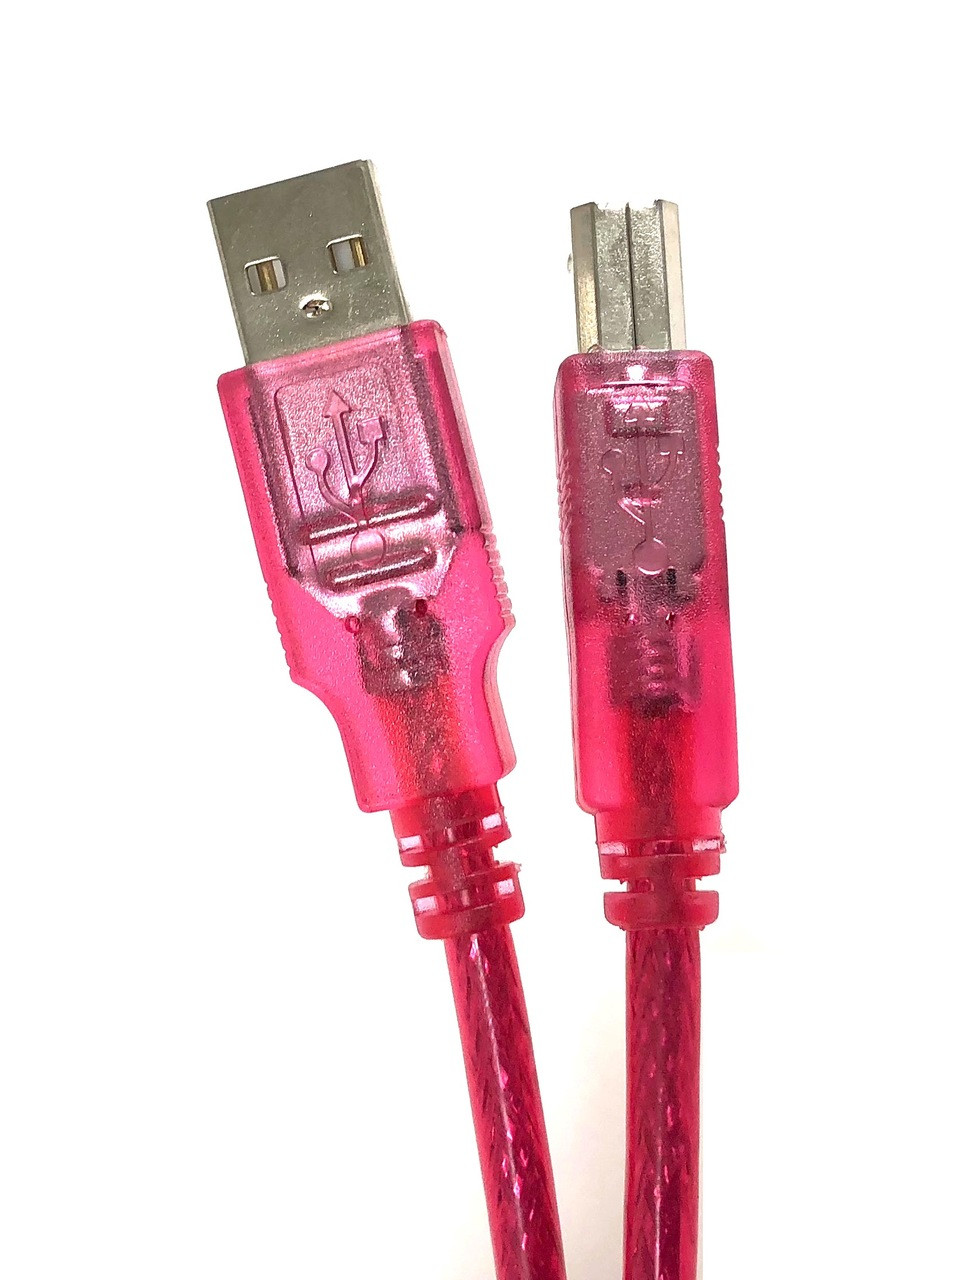 USB 2.0 A to B Type Cable - Strawberry - 6ft